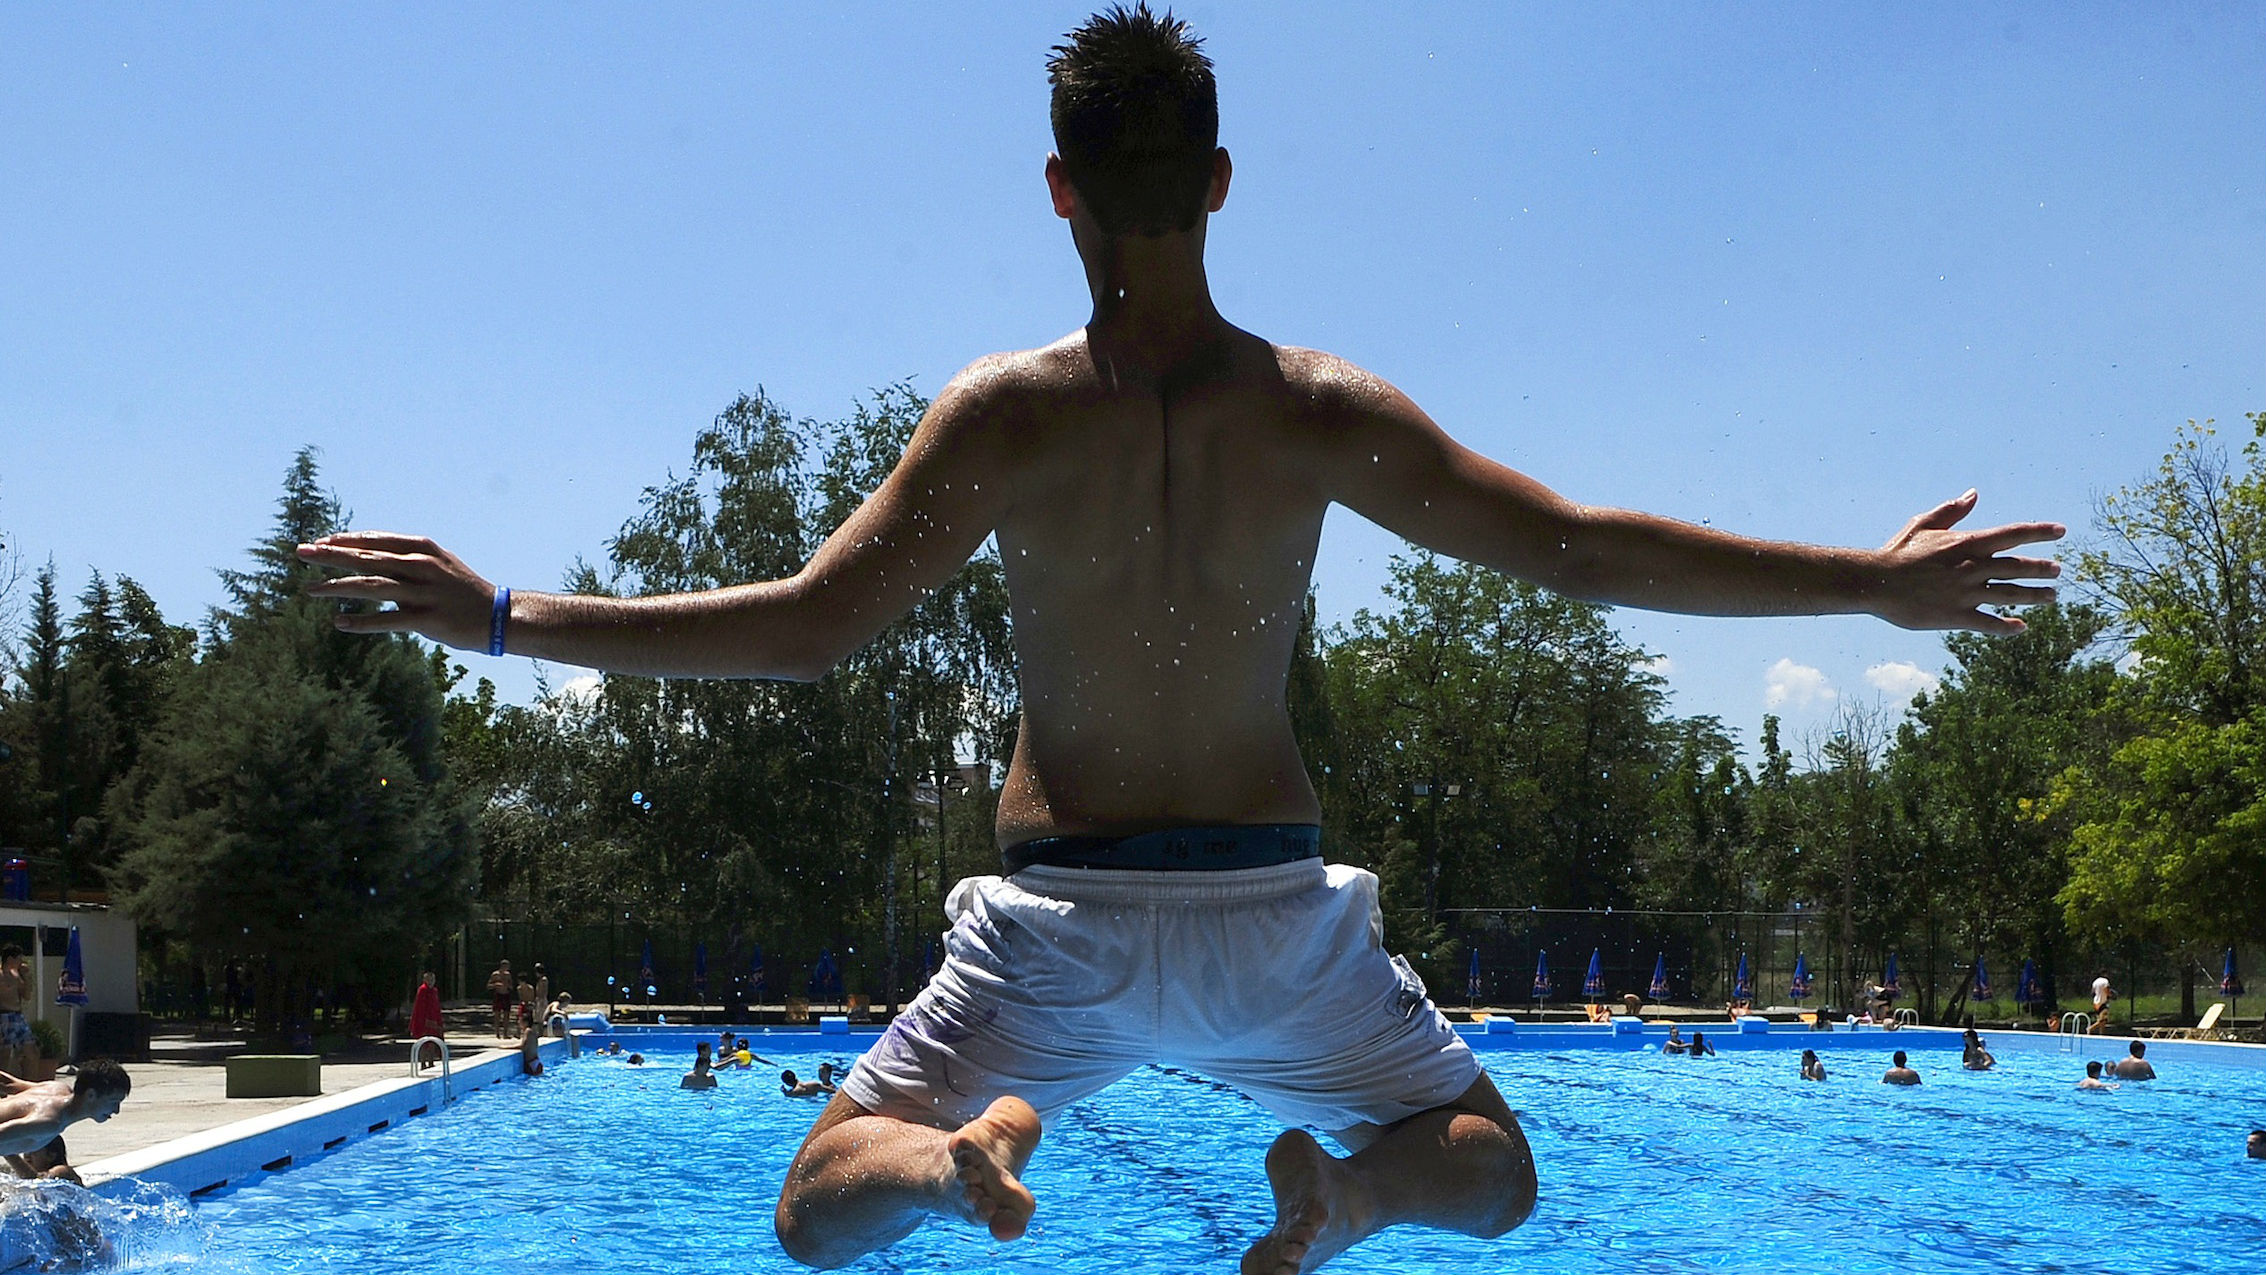 A man jumps into a swimming pool.